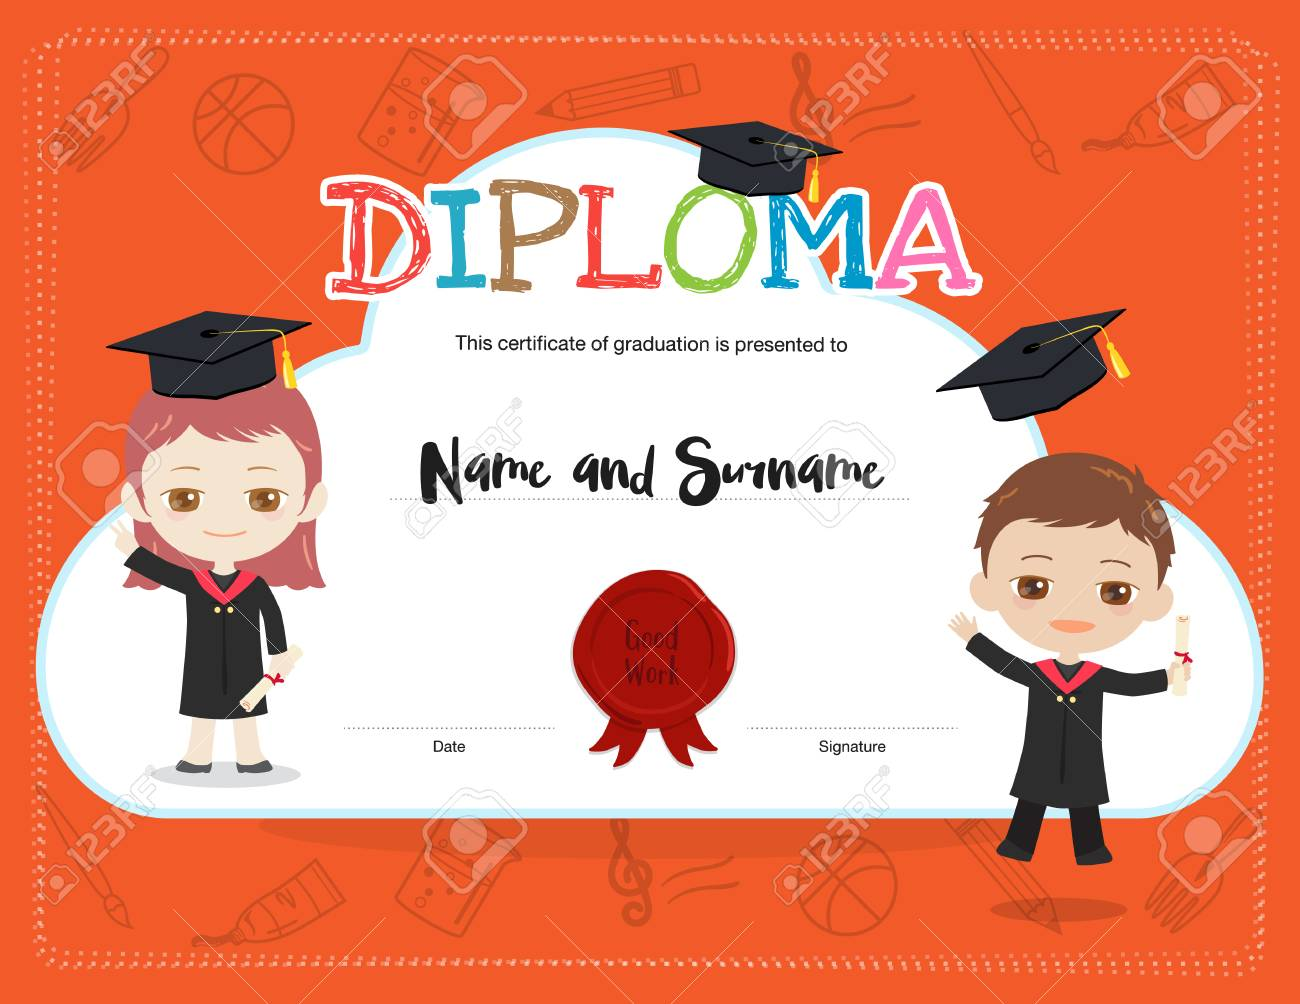 Colorful Kids Diploma Certificate Template In Cartoon Style With ...